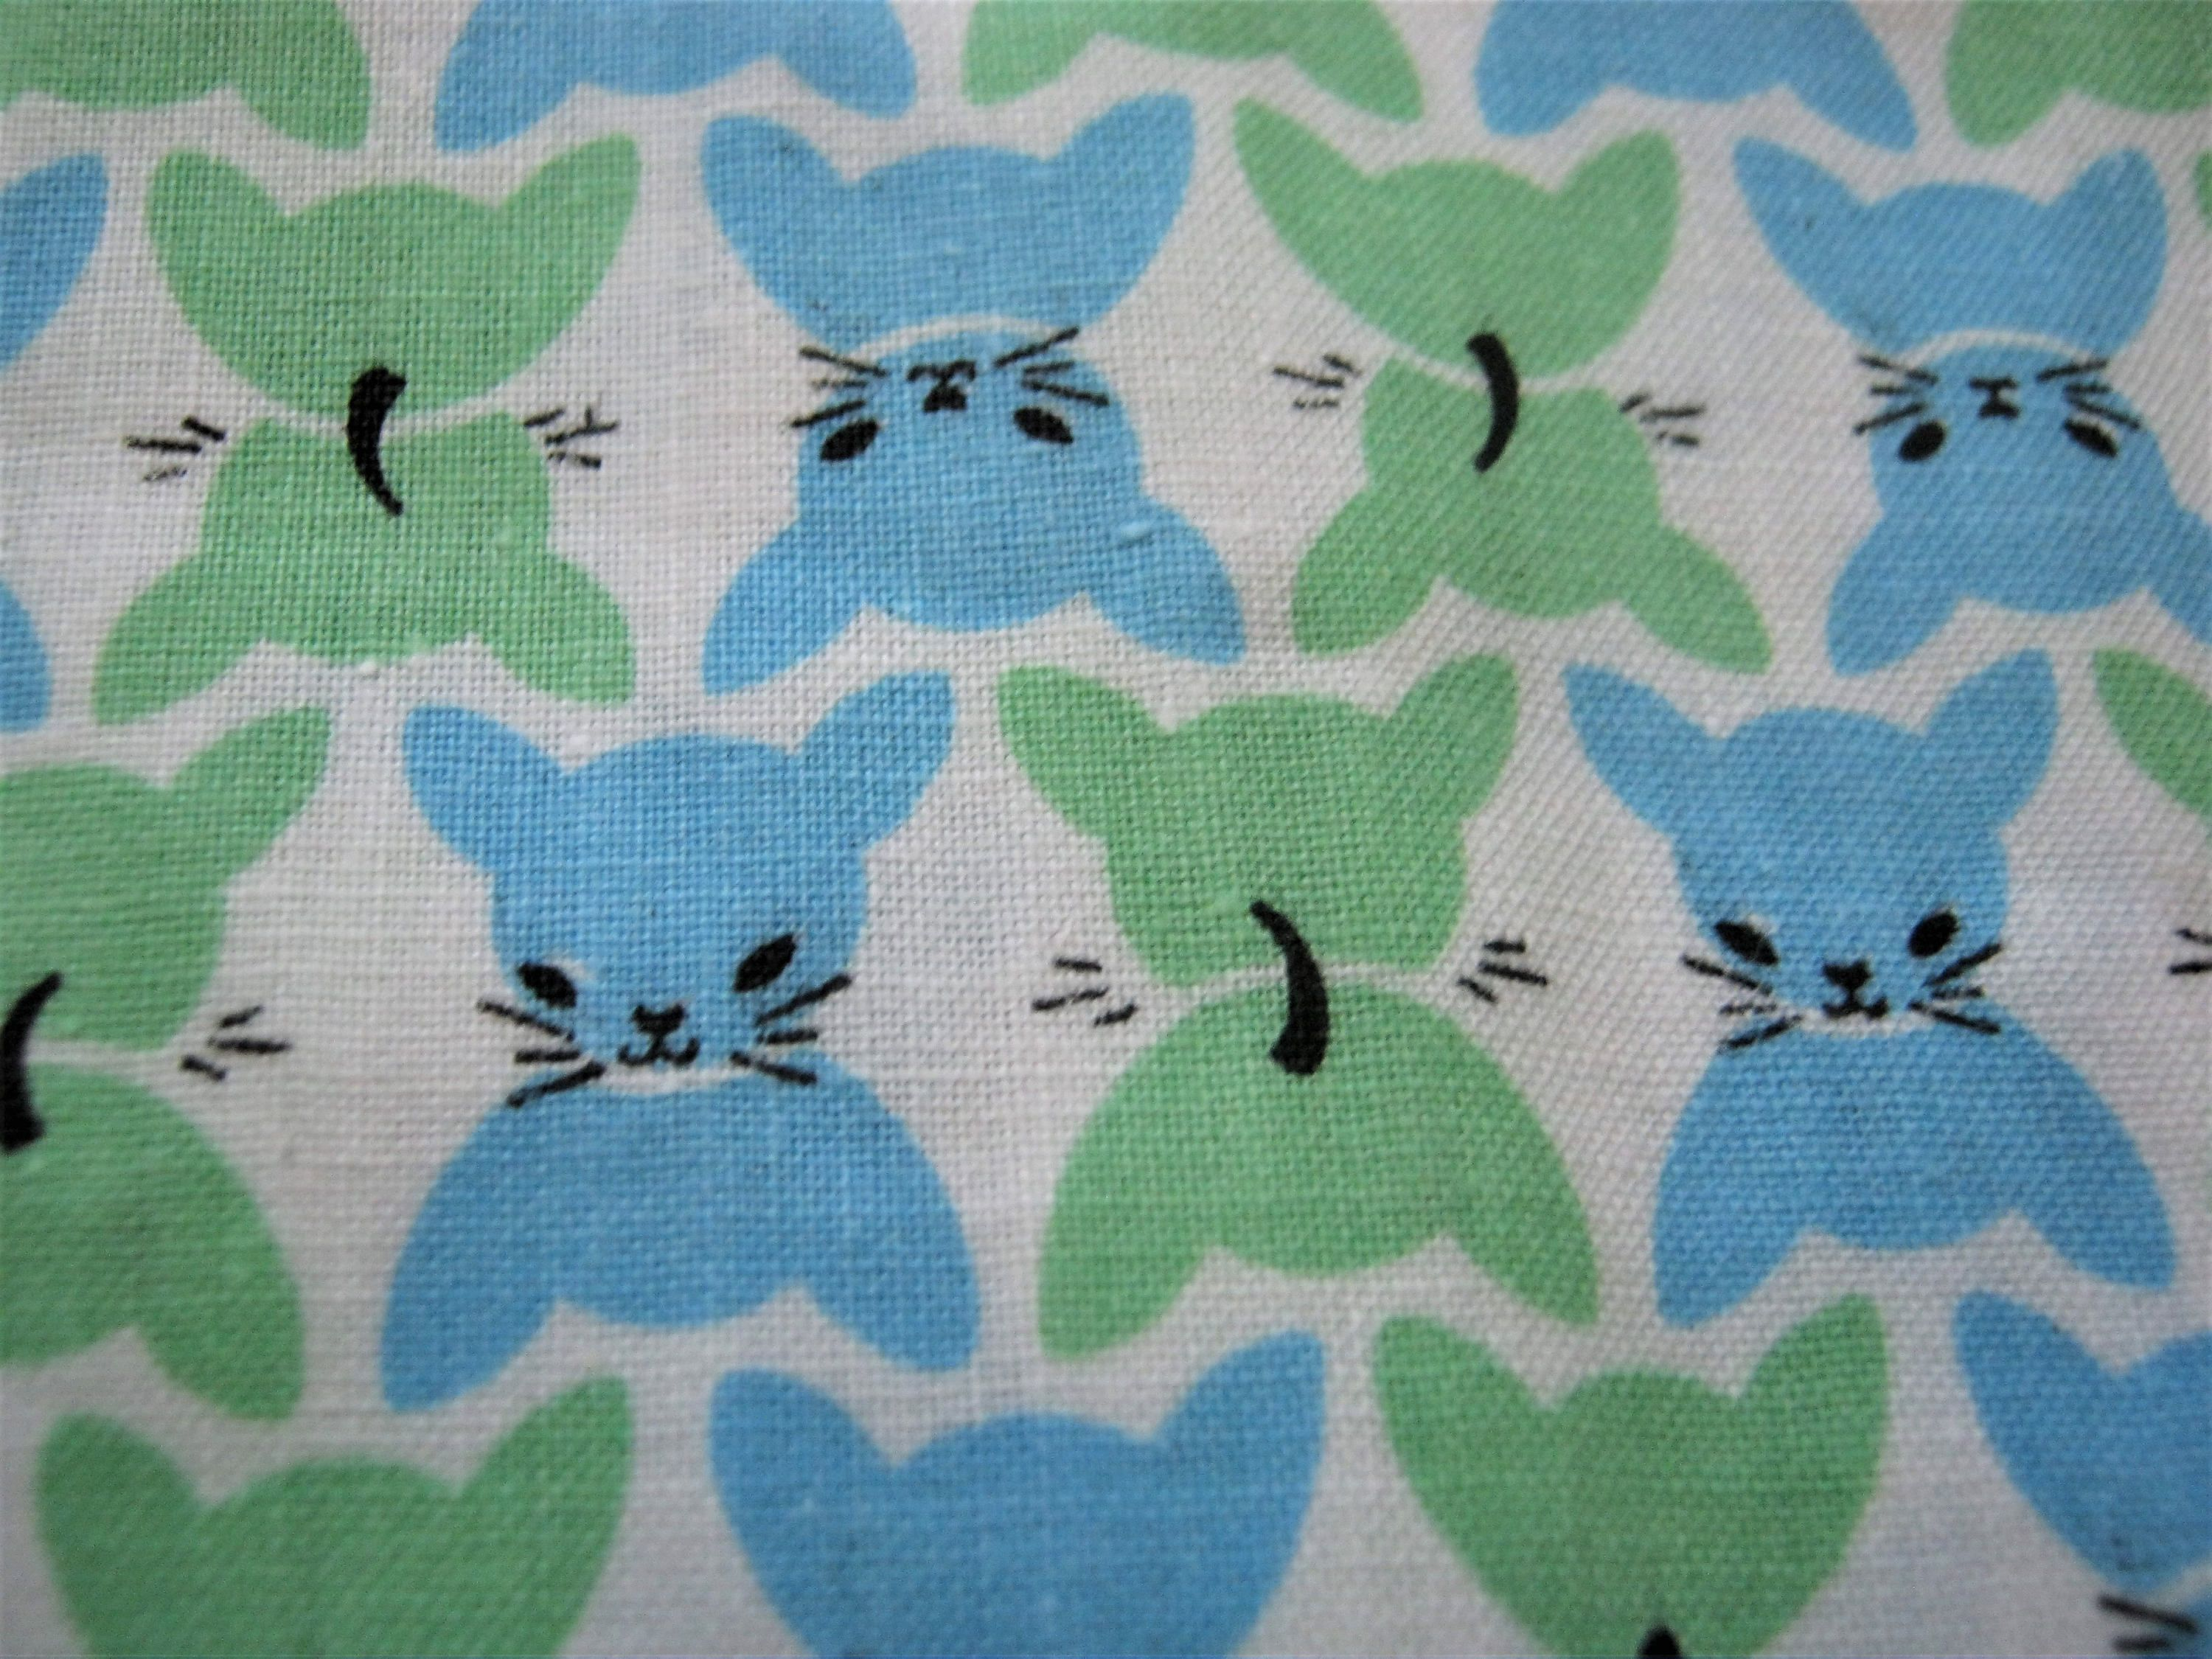 Vintage Kitten Fabric 1930 S Or 1940 S Fabric Cats On White Background Cotton Blue And Green Kitties True Vintage Width 36 Esta Fabric Antique Fabrics Vintage